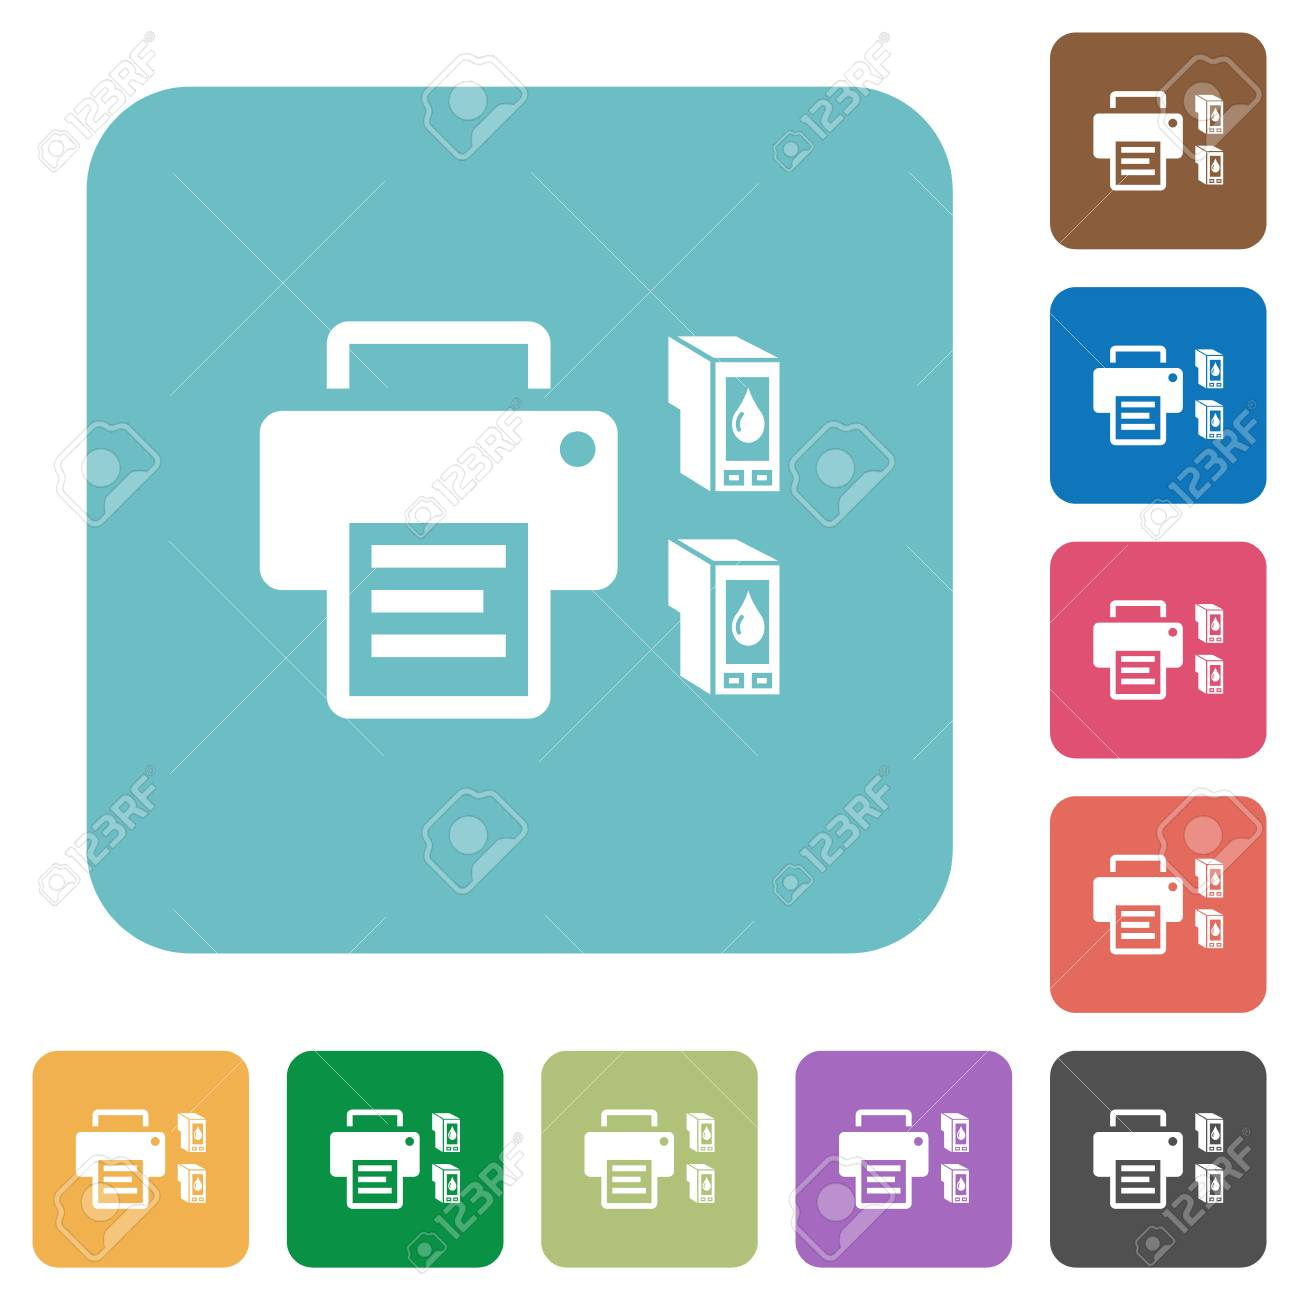 Printer and ink cartridges white flat icons on color rounded square backgrounds - 126011746